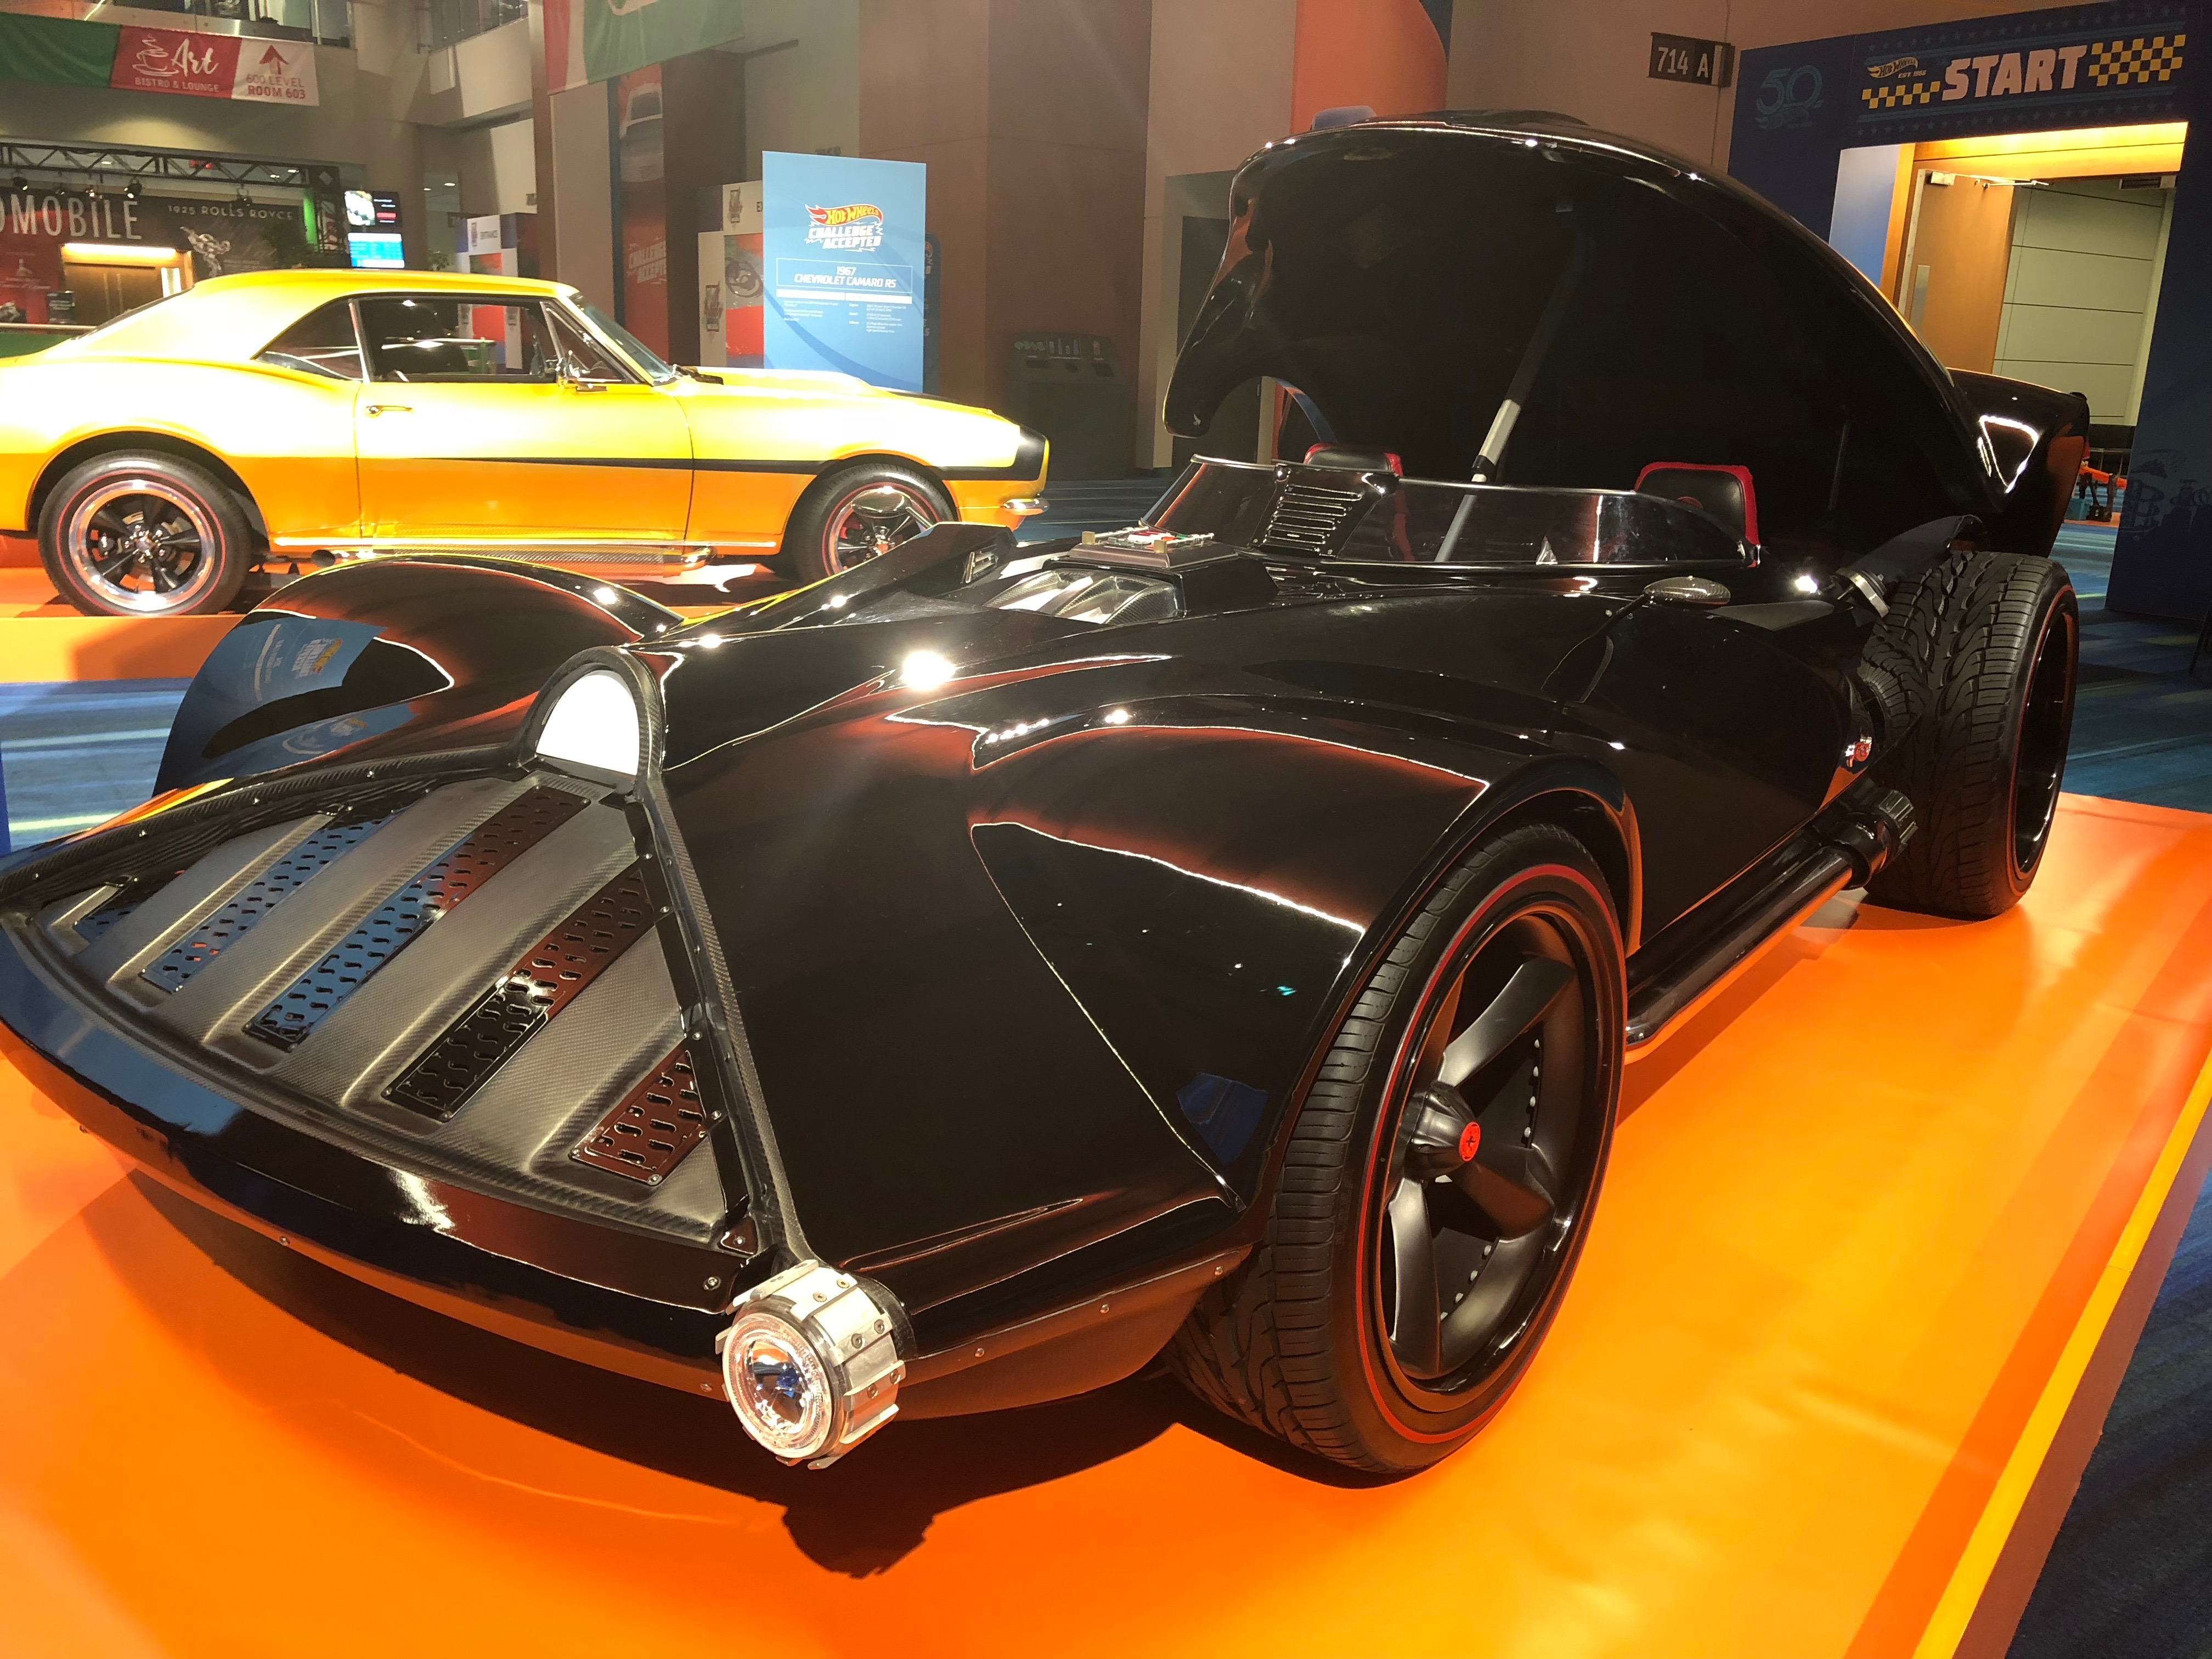 Hot Wheels 50th Anniversary celebrations at CIAS - Canadian Reviewer -  Reviews, News and Opinion with a Canadian Perspective